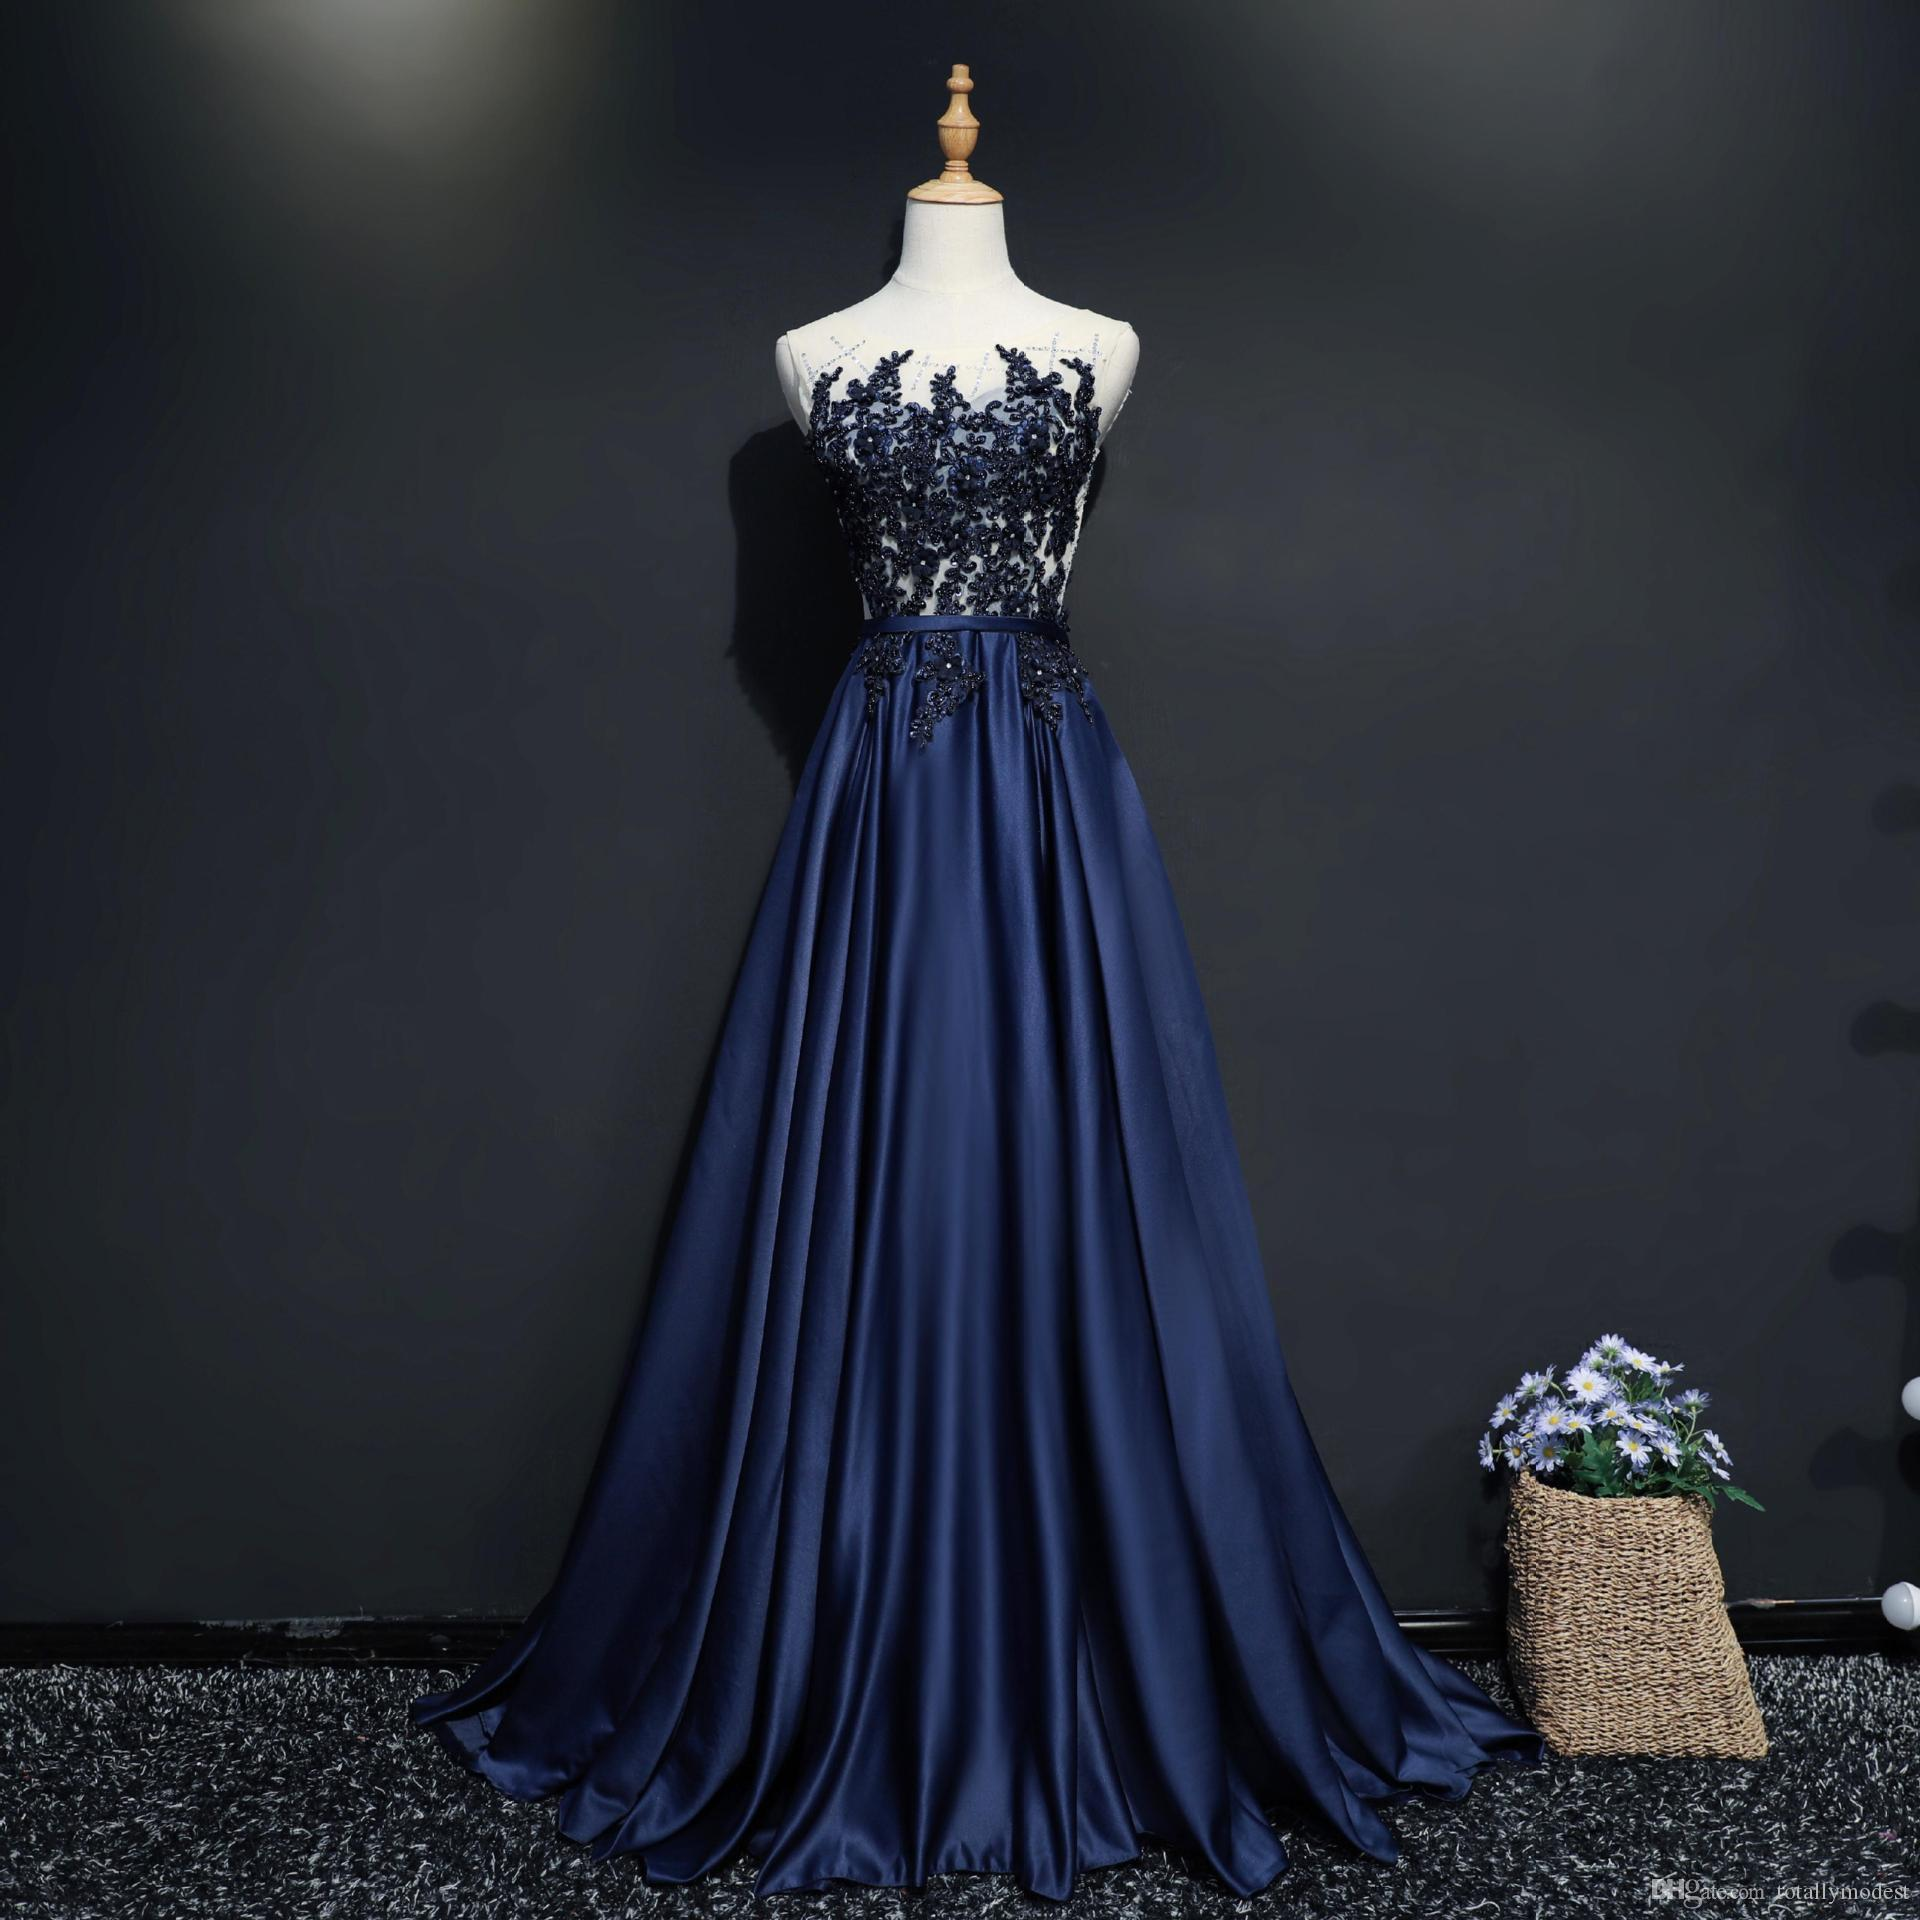 fa933a9f7b9 2018 New Dark Navy Blue Long Prom Dresses With Satin Skirt In A Line Shape  Beaded Lace Top Illusion Back Teens Formal Party Dress Custom Prom Dress  Sites ...